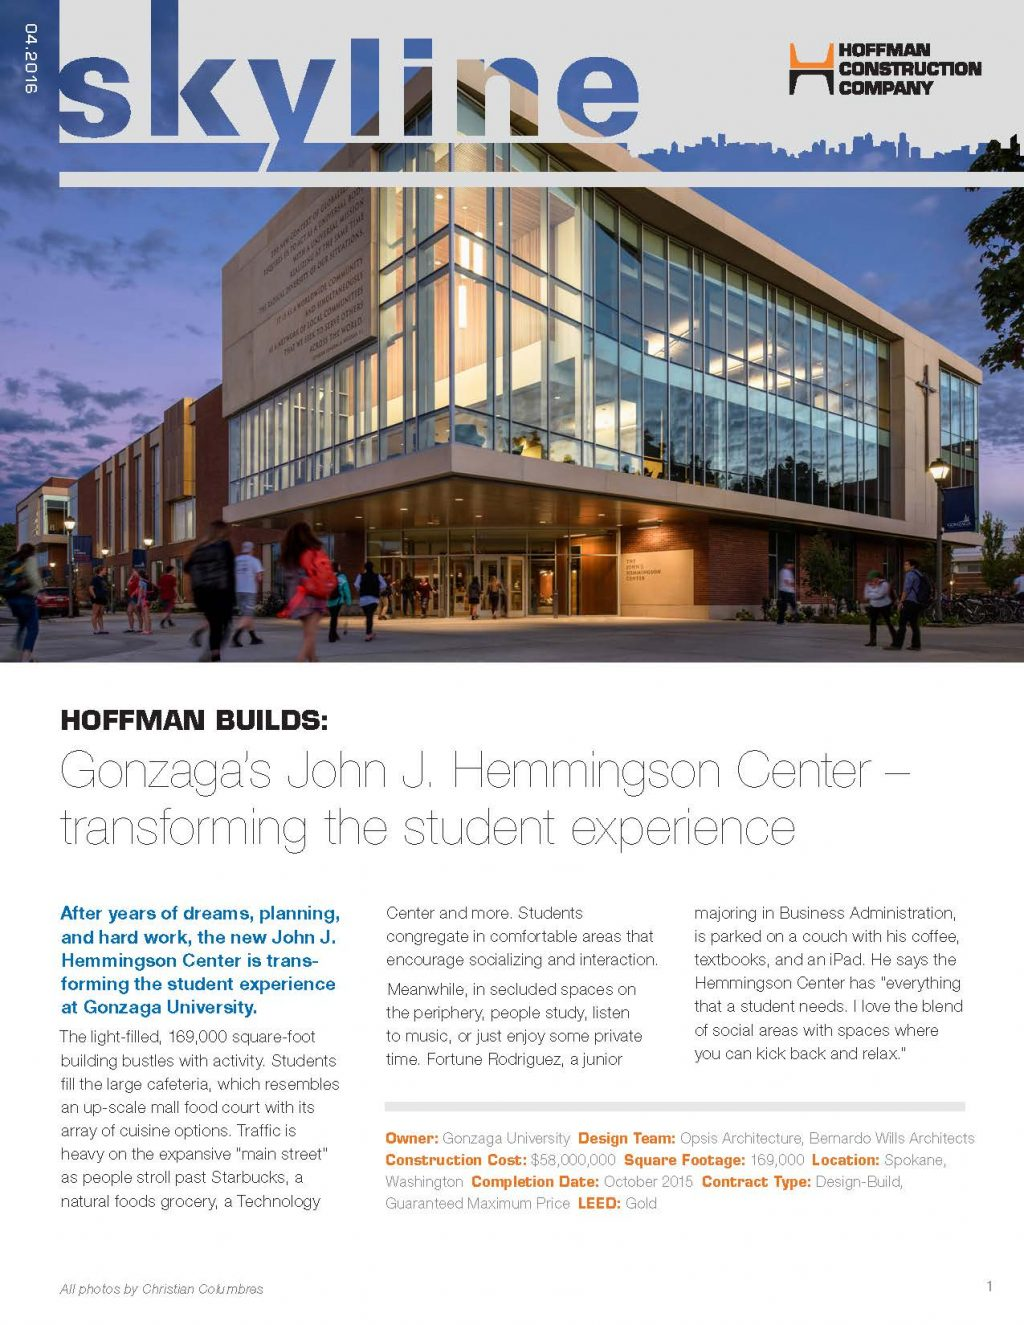 Gonzaga-Hemmingson-Center, Skyline Magazine, Hoffman Construction Company